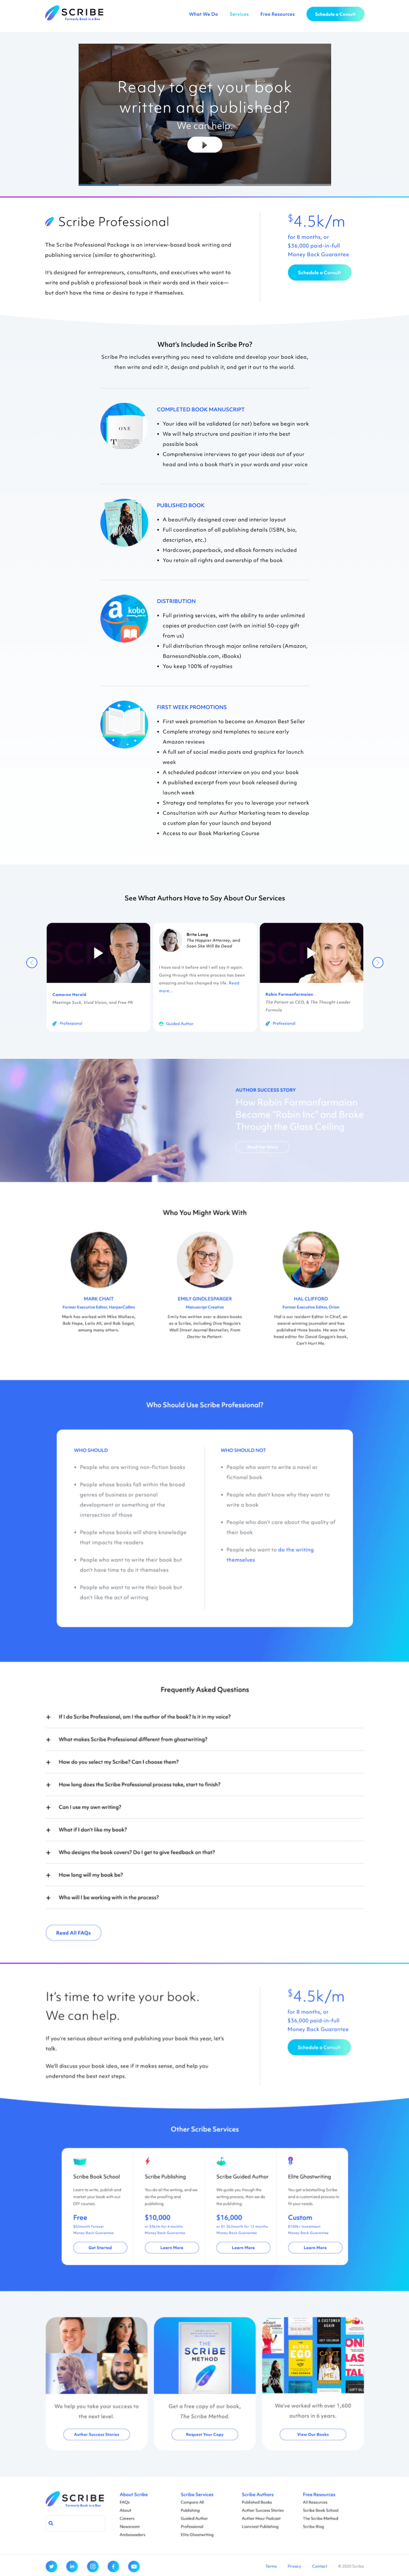 Scribe Video Landing Page Example